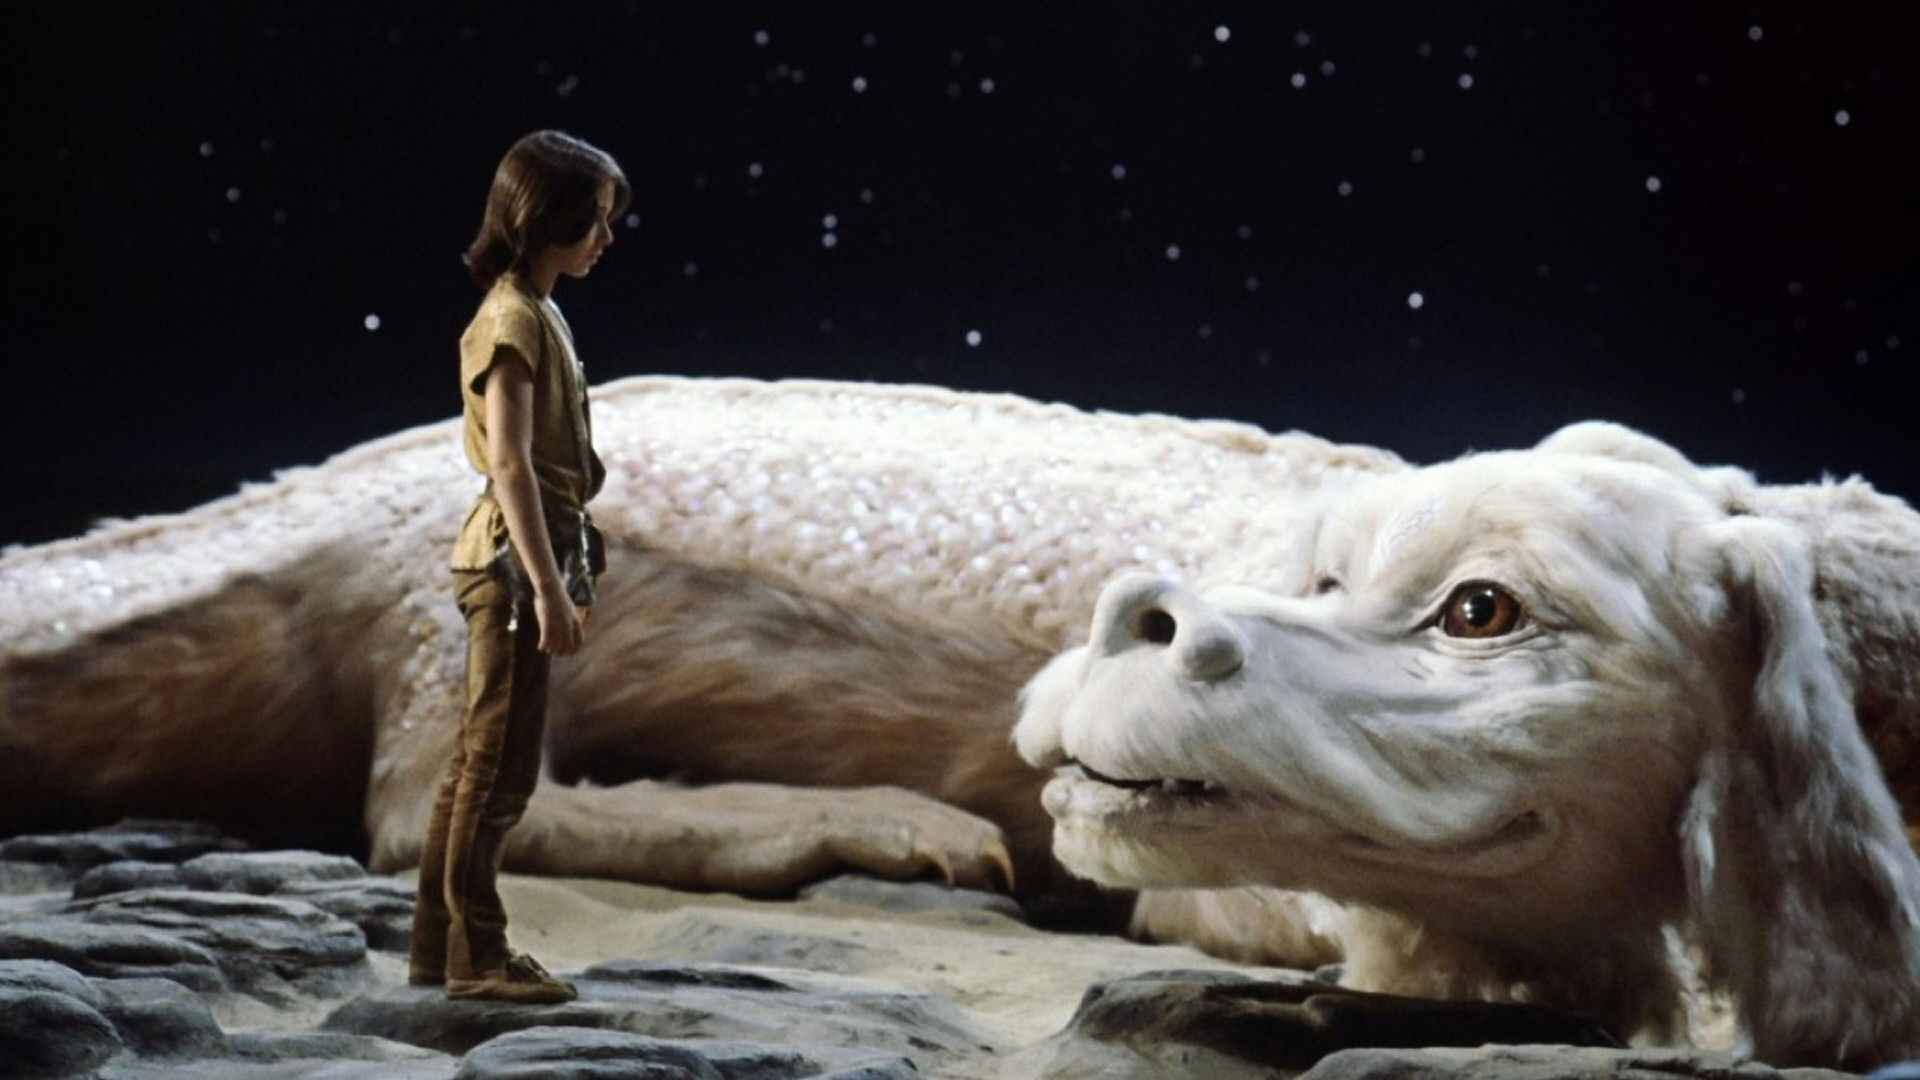 The neverending story - The Longest Journey